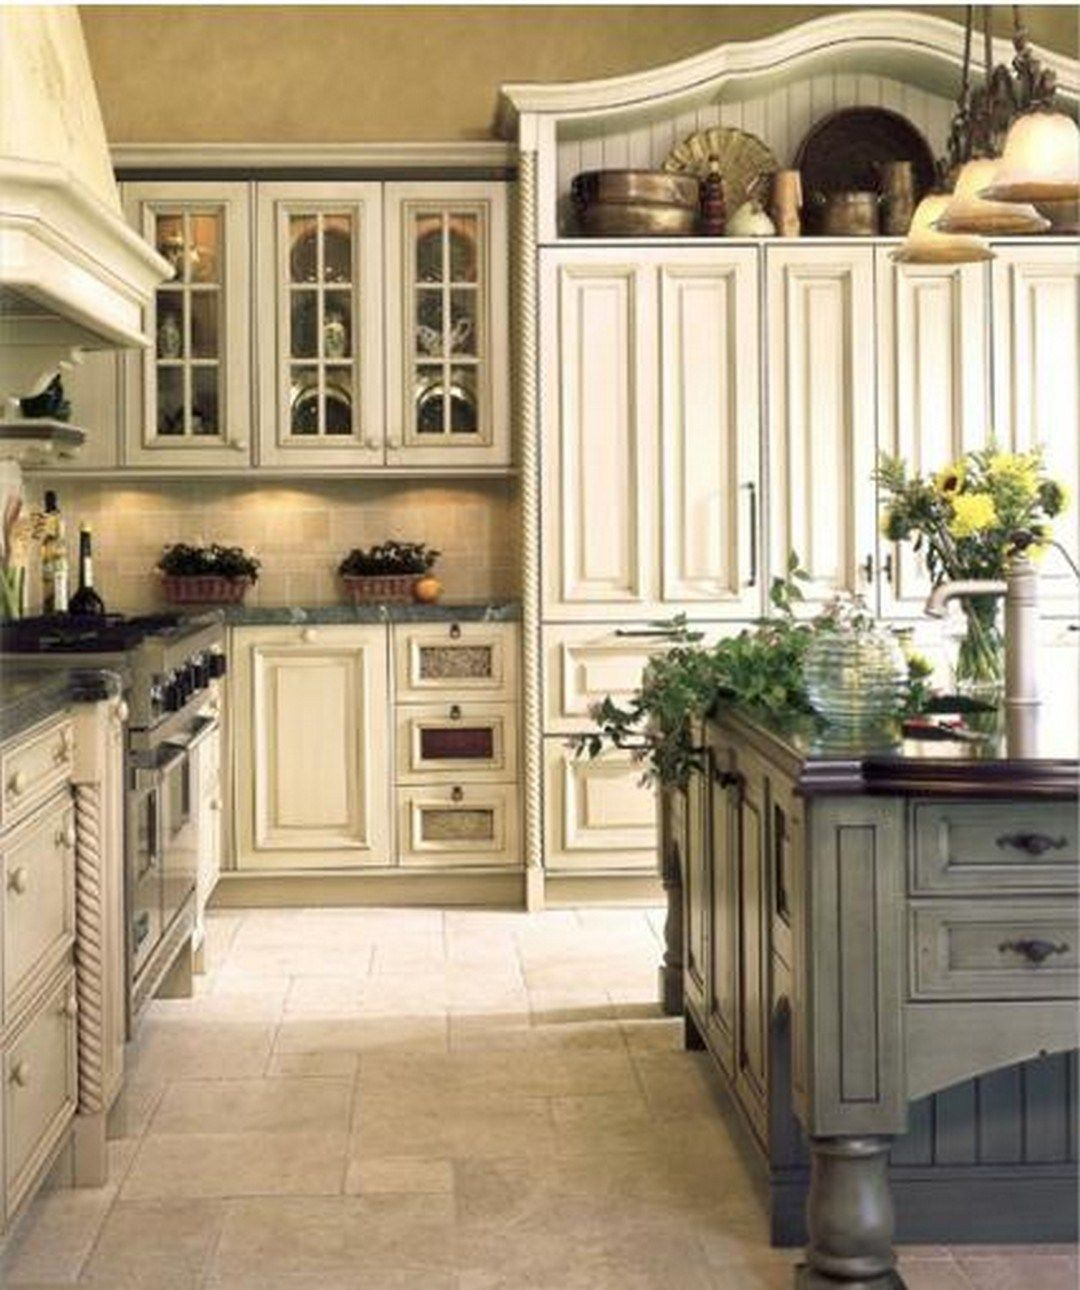 Country Kitchen Look: 99 French Country Kitchen Modern Design Ideas (30)